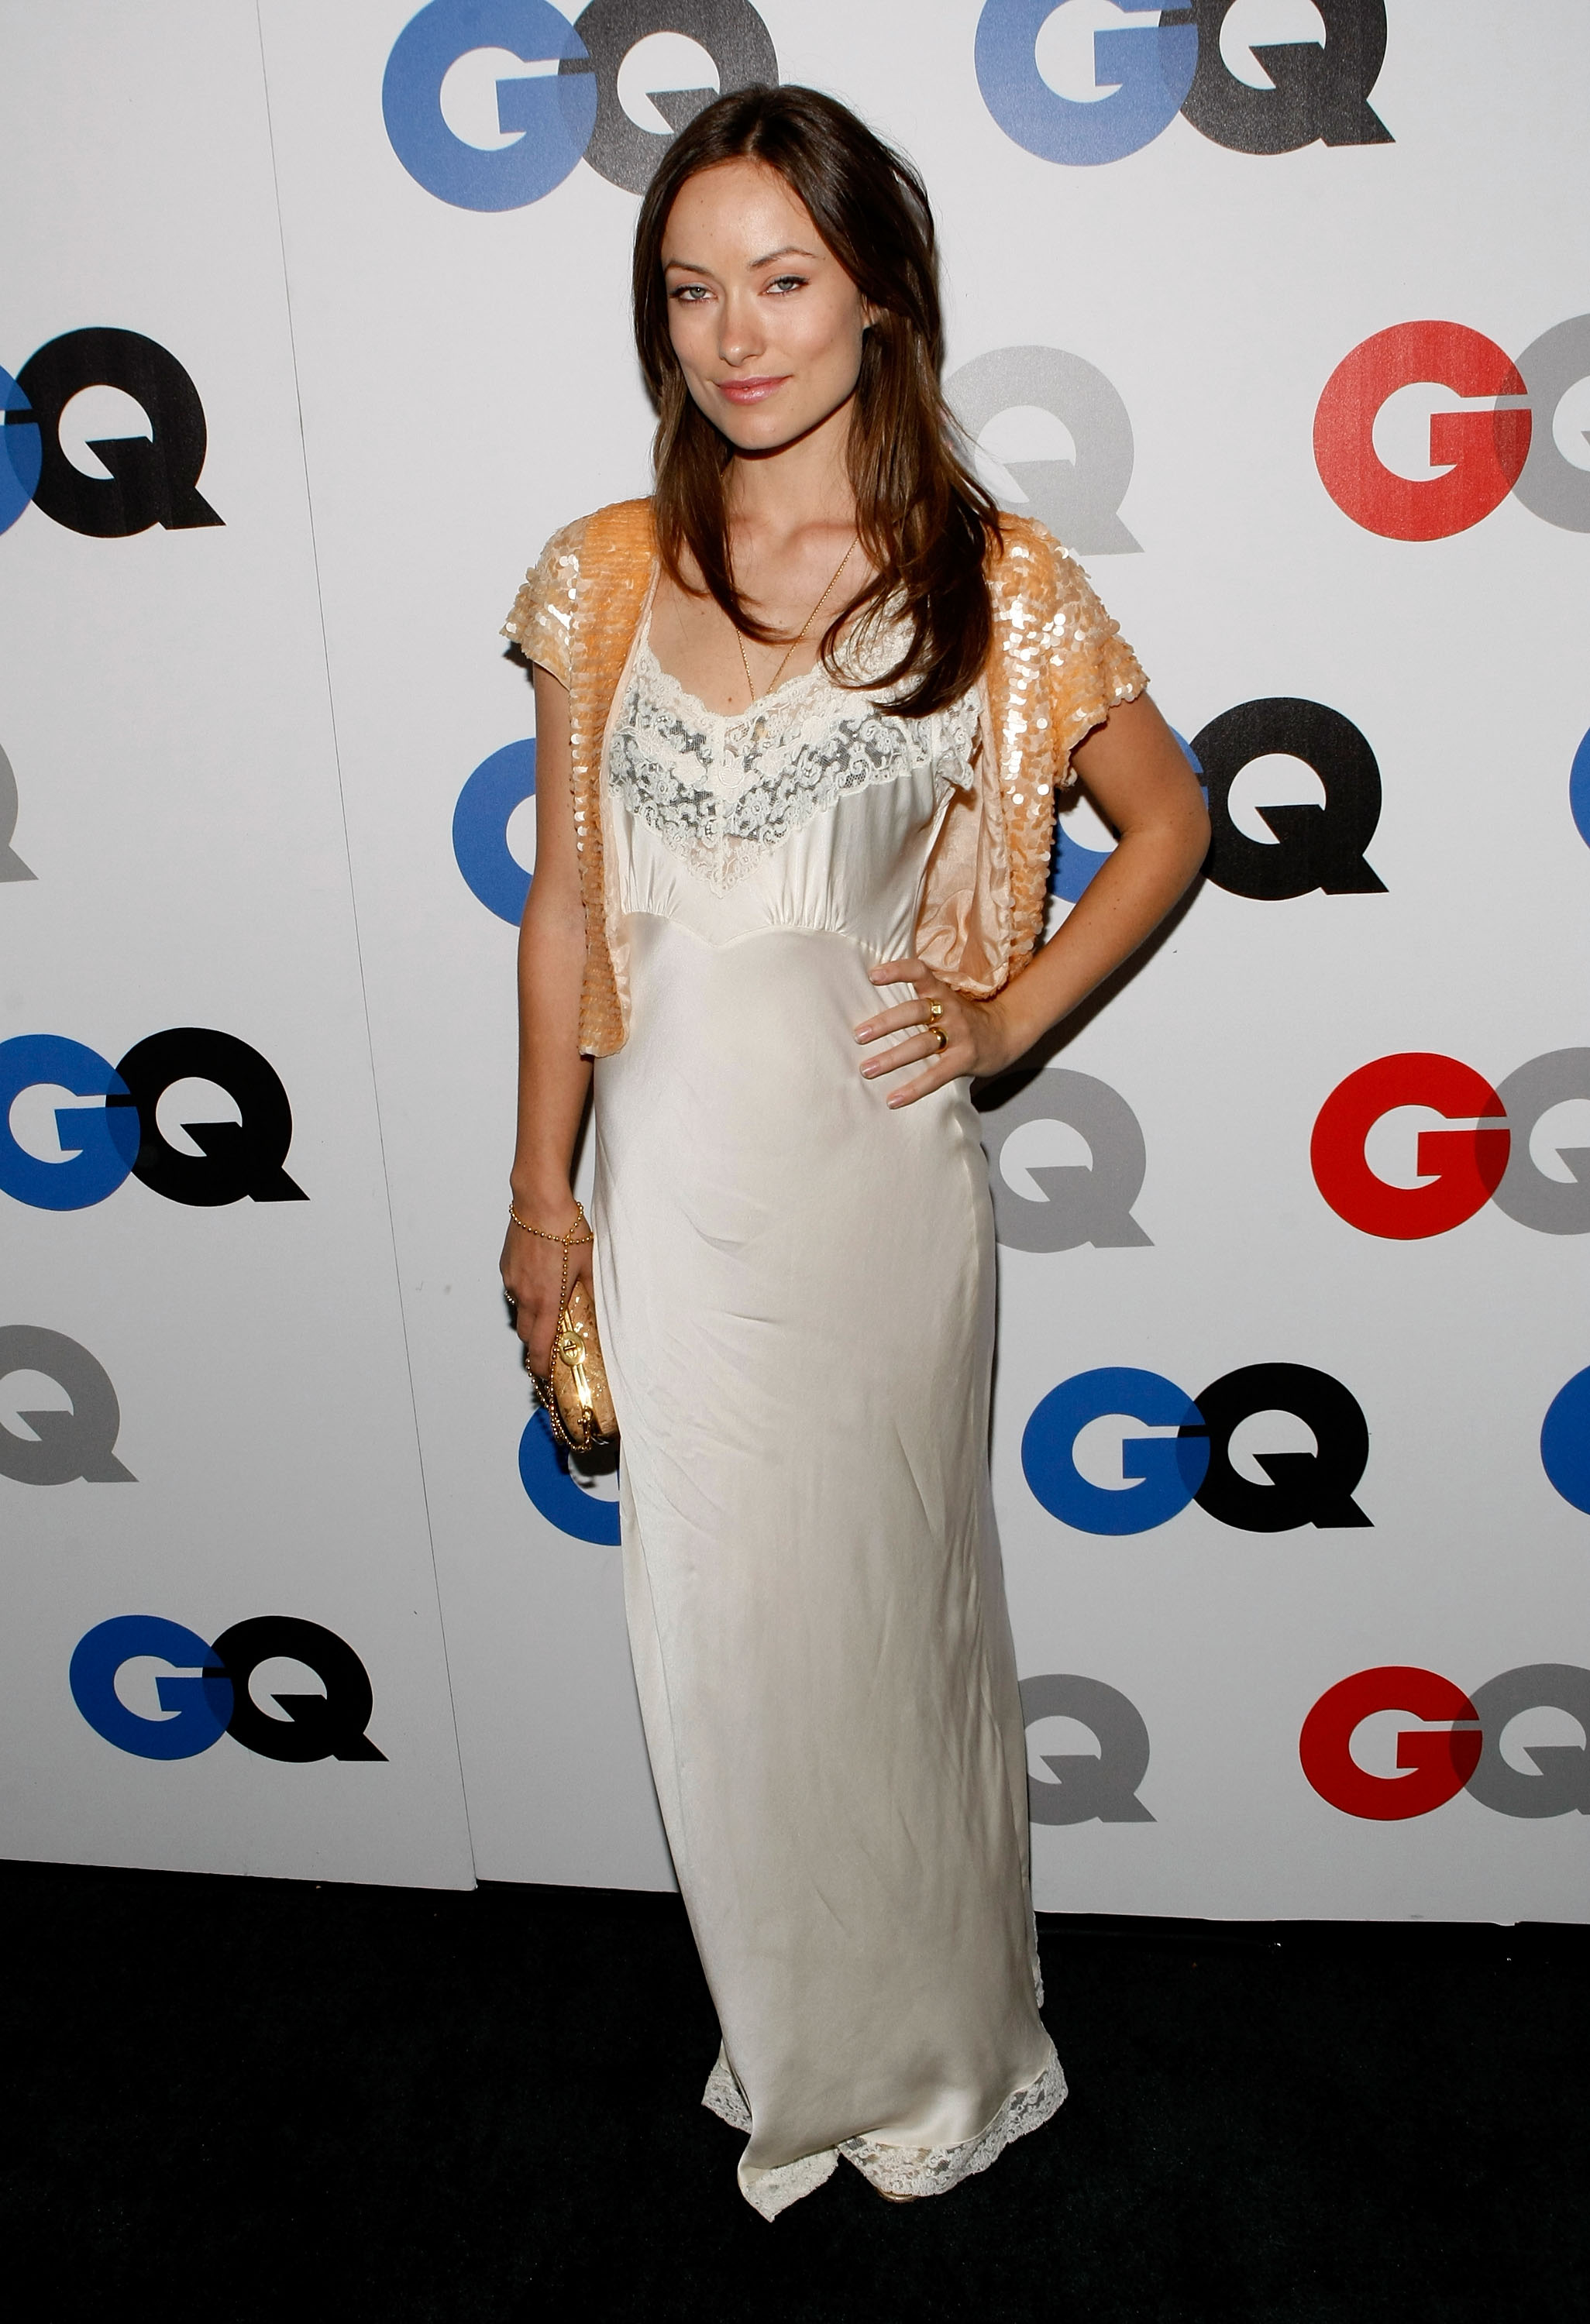 96382_Celebutopia-Olivia_Wilde-GQ_Men_of_the_Year_party-02_122_129lo.jpg